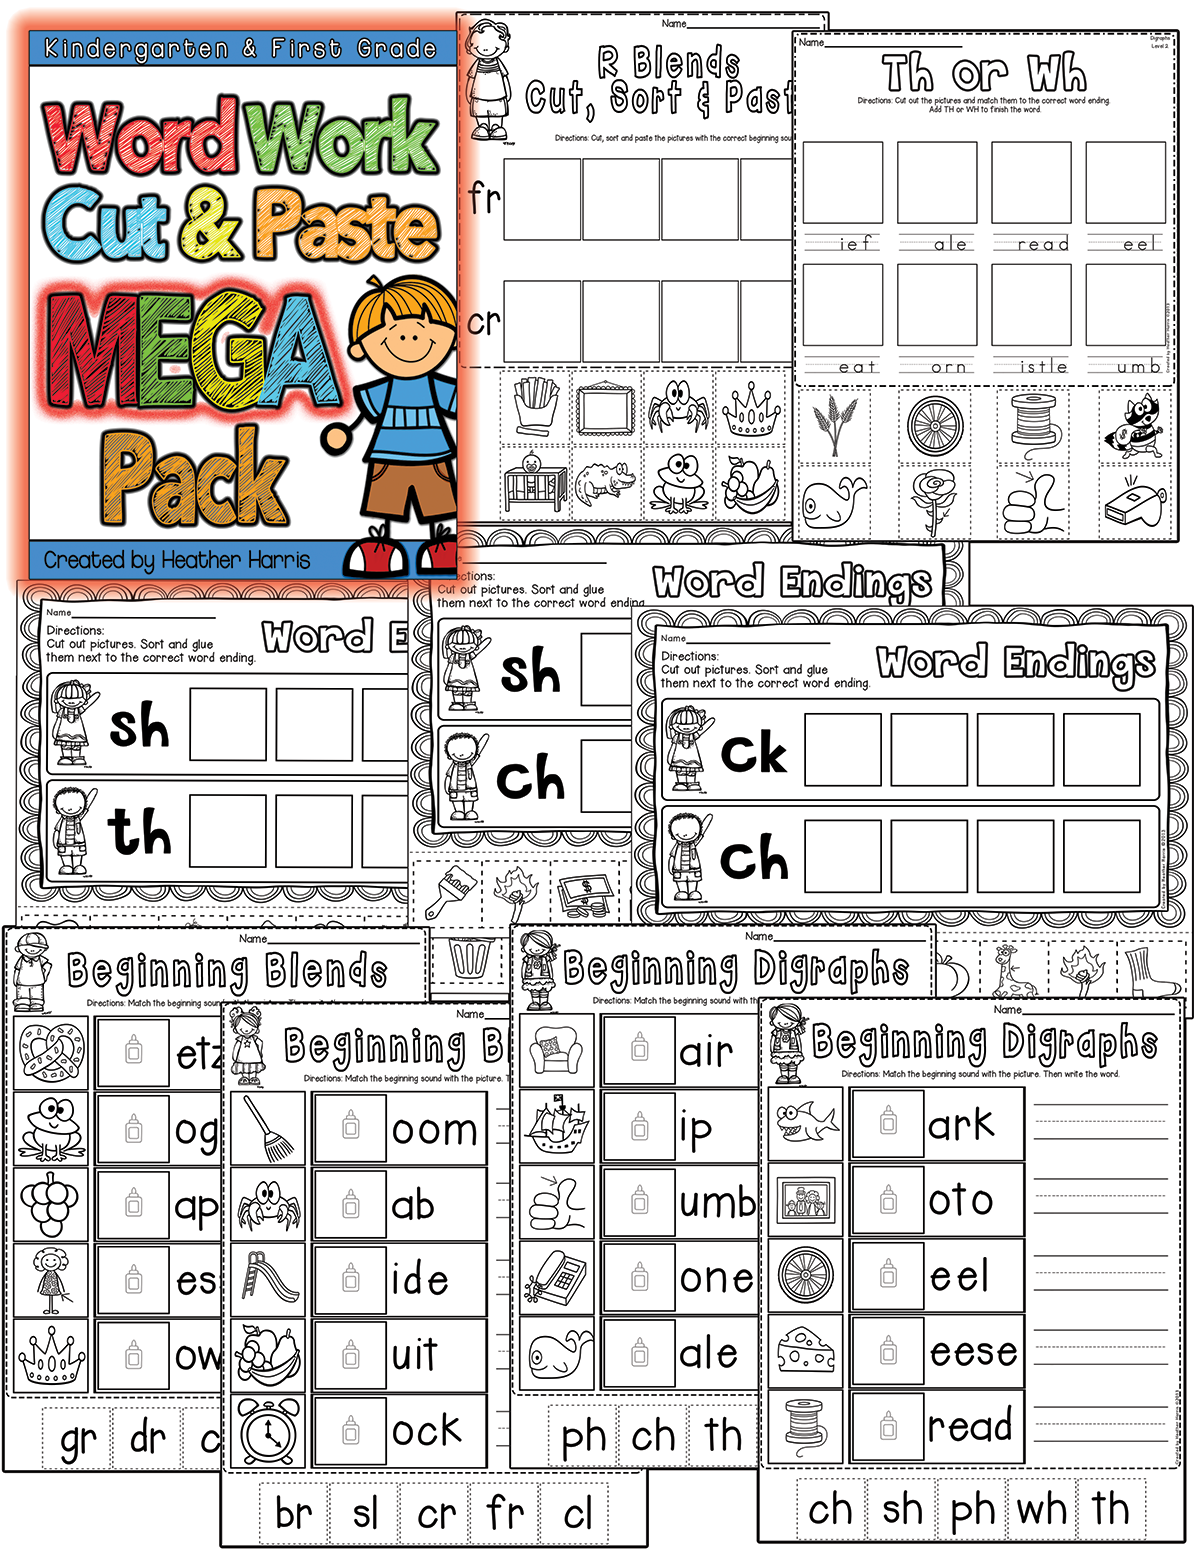 135 Pages Of Cut And Paste Activities For Word Work